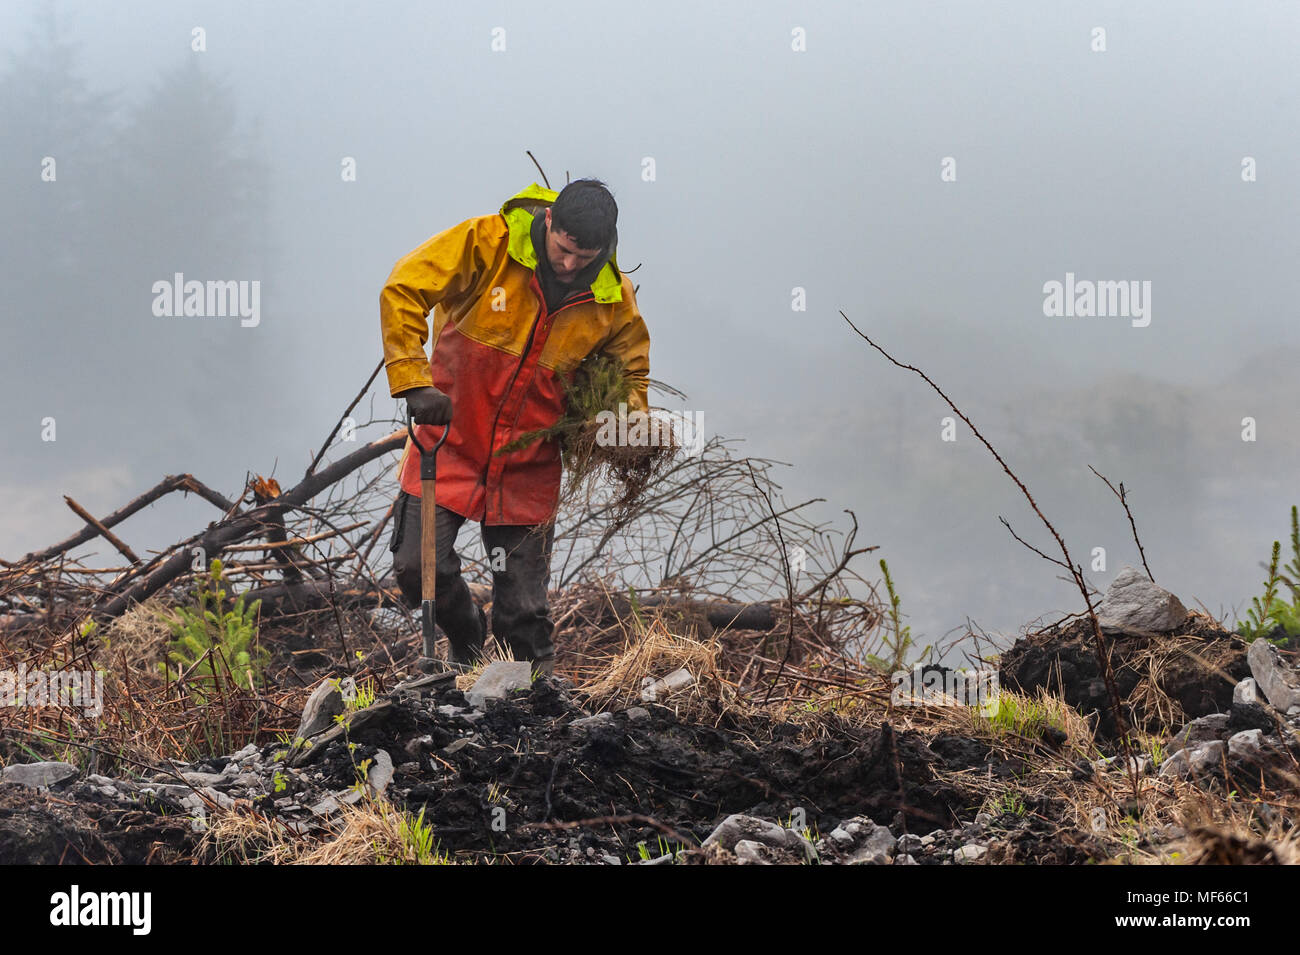 Coilte sub-contractor plants trees in a forest in Ballydehob, Ireland. - Stock Image